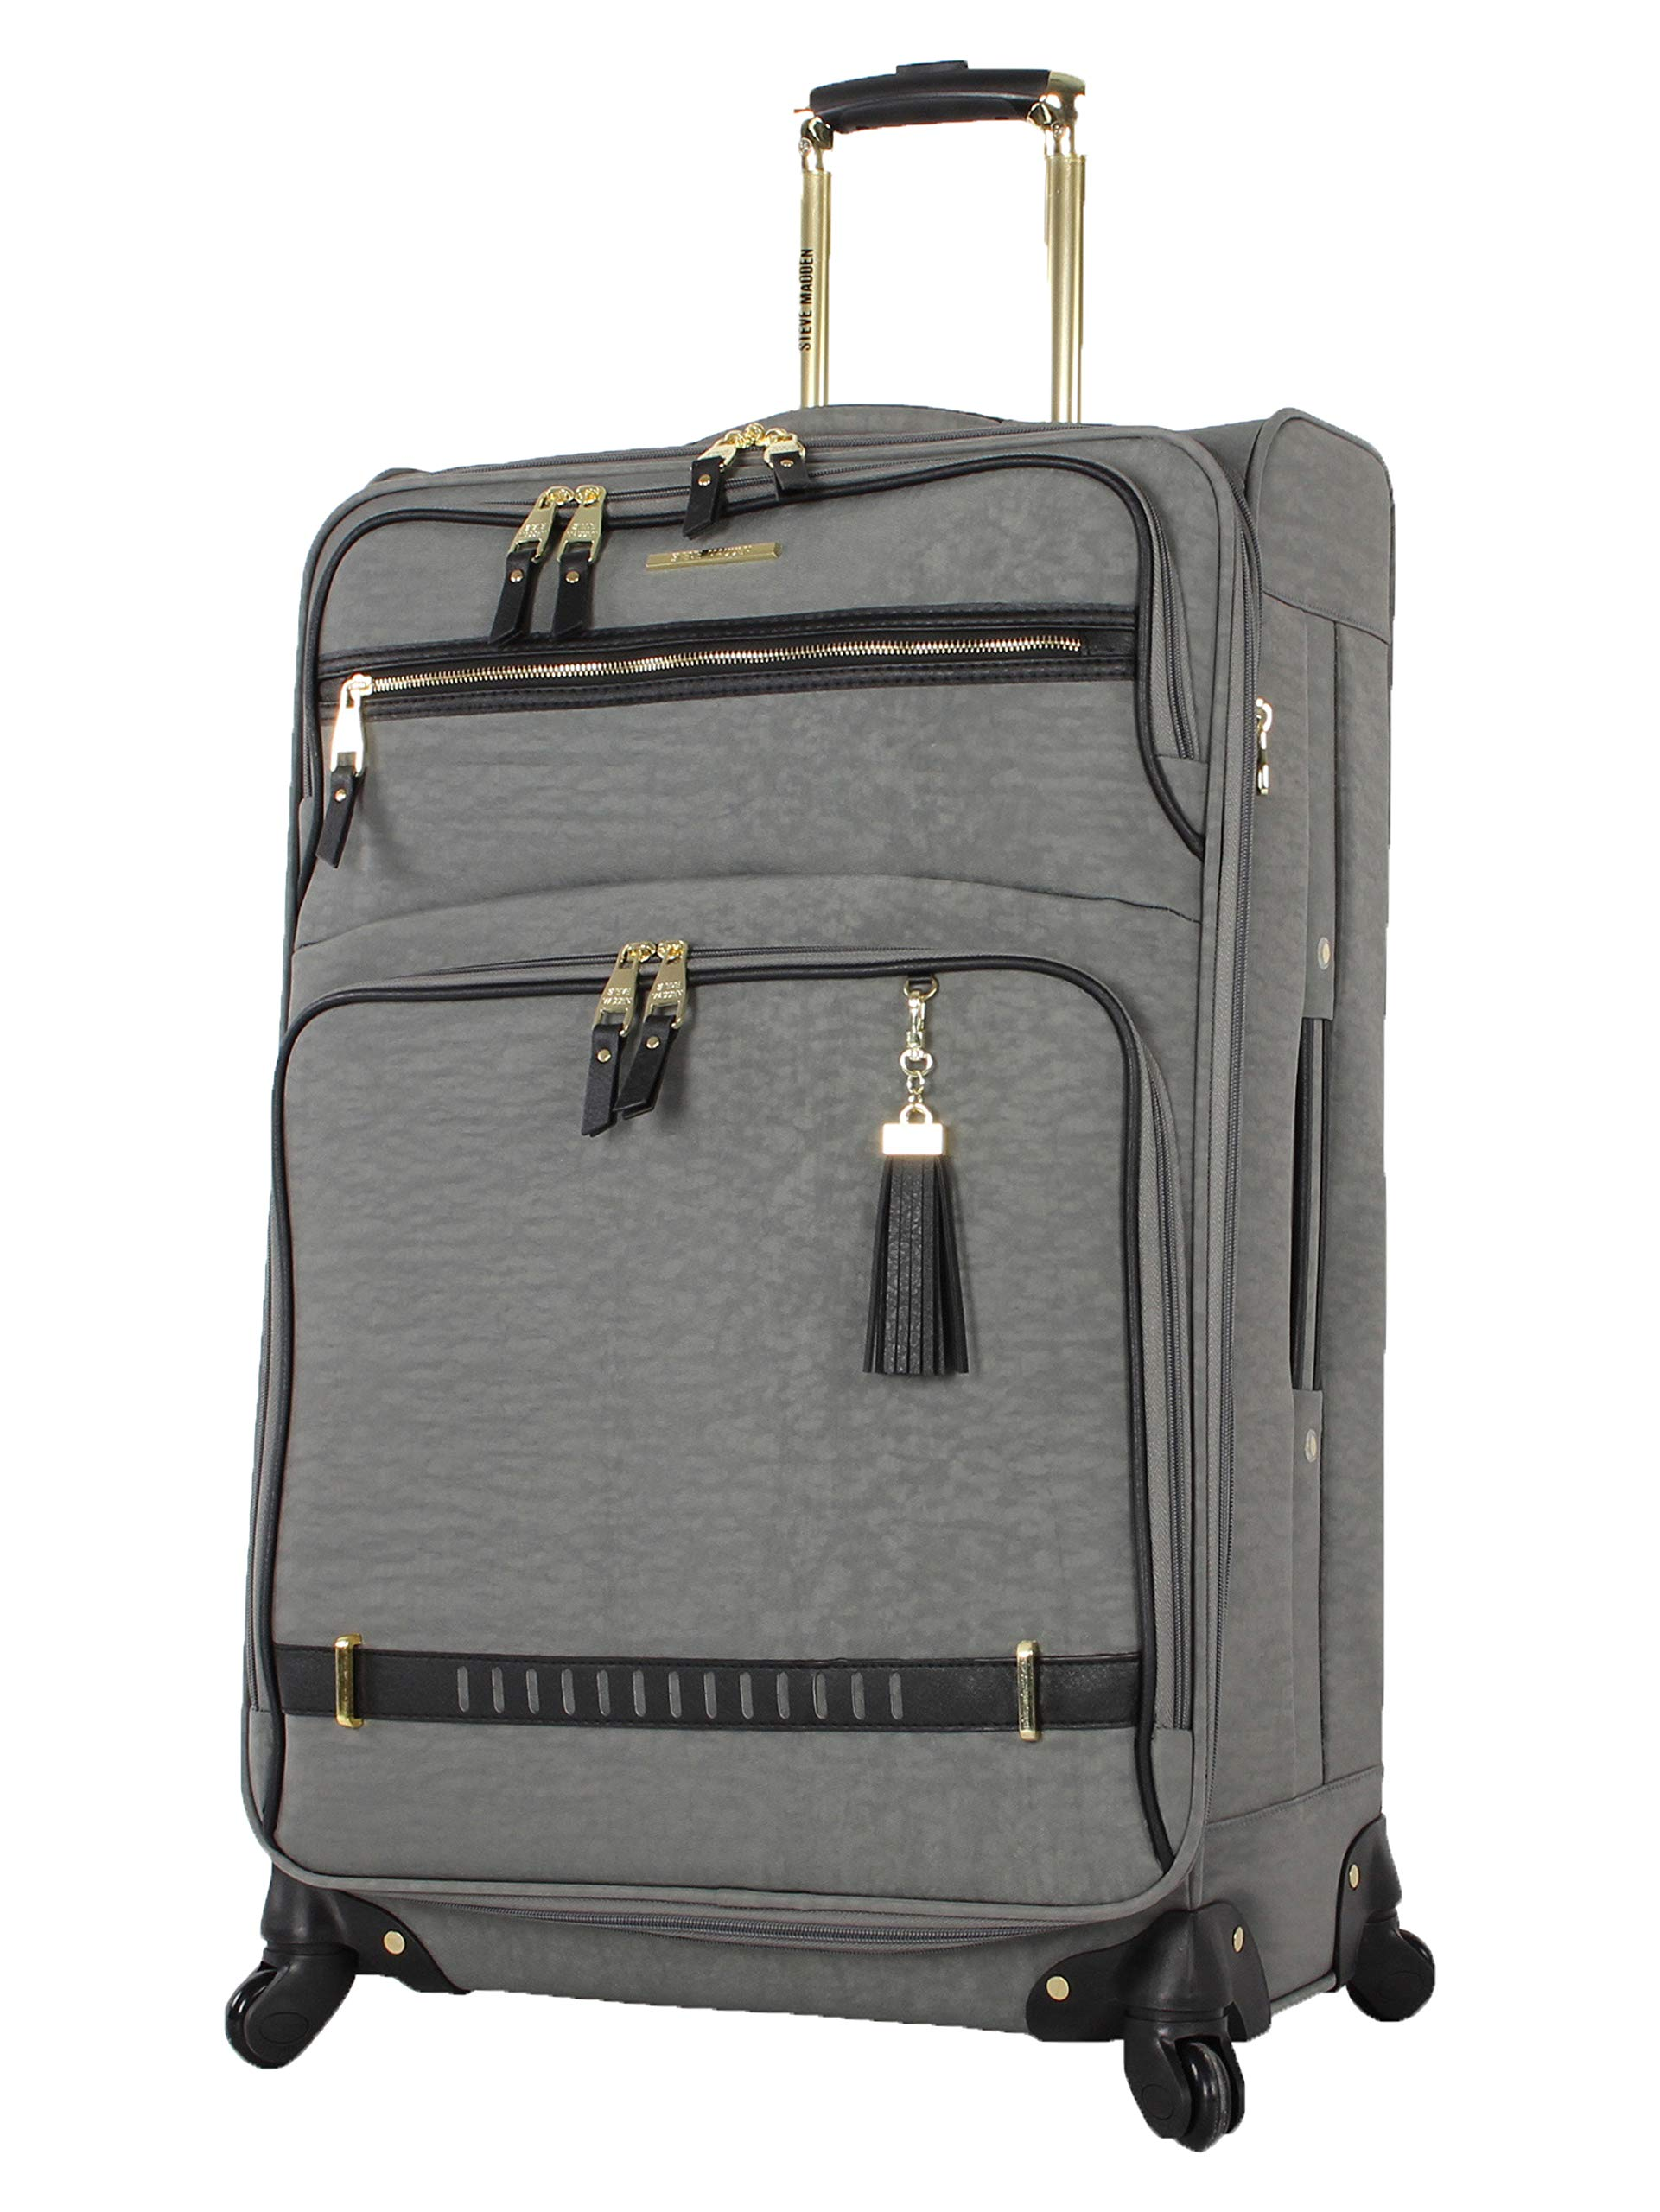 Steve Madden Luggage 24'' Expandable Softside Suitcase With Spinner Wheels (Peek A Boo Gray, 24in)